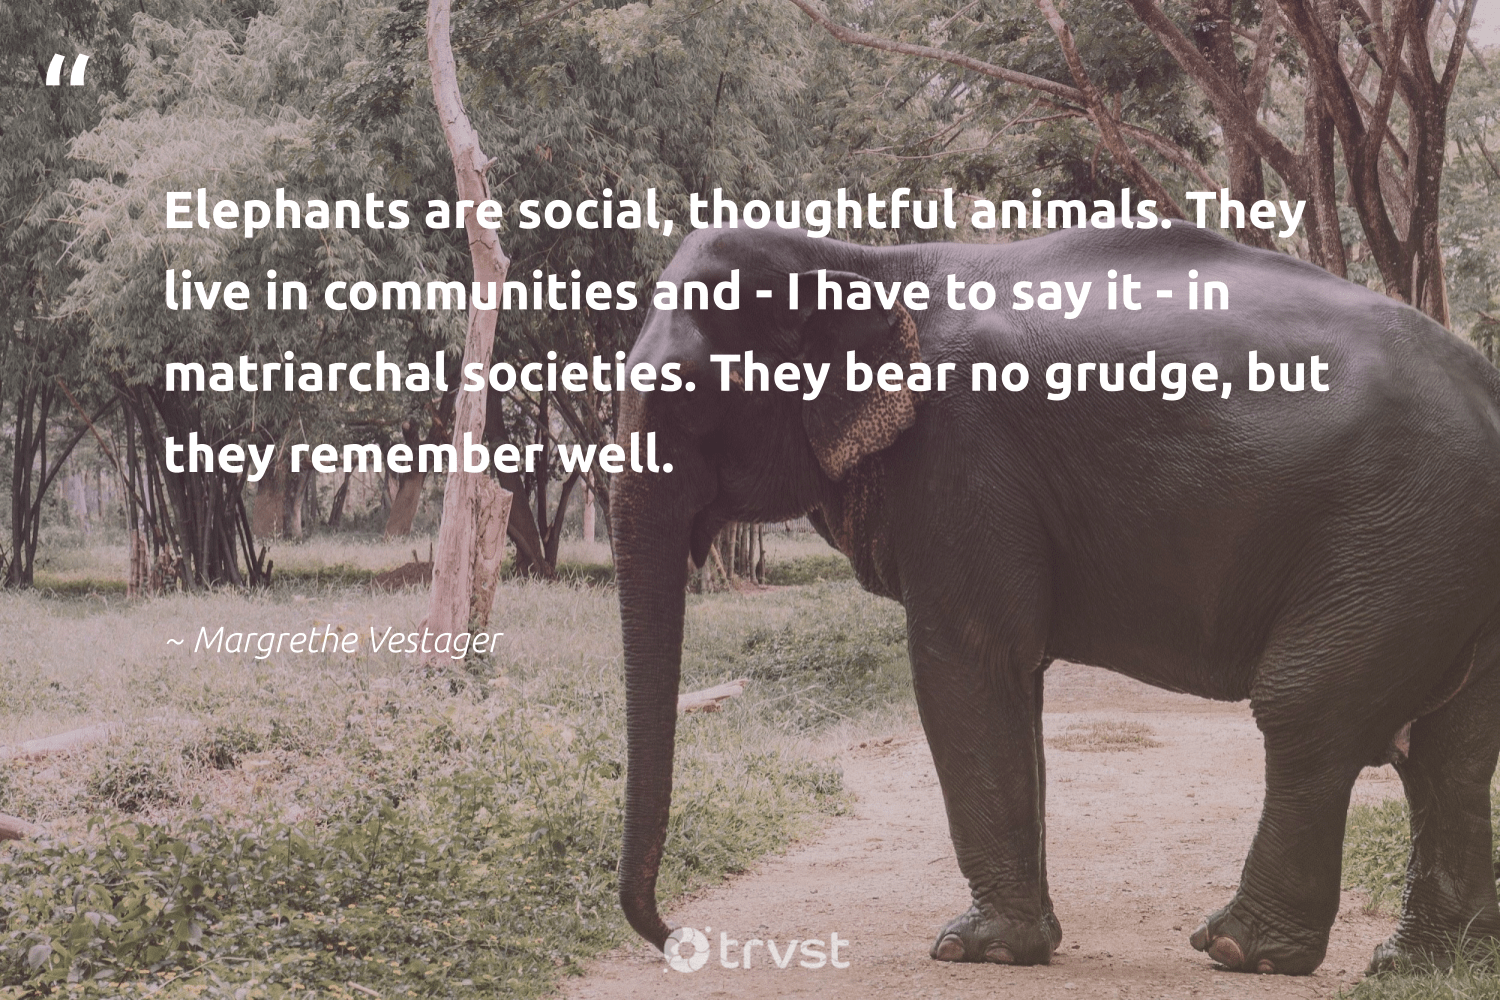 """""""Elephants are social, thoughtful animals. They live in communities and - I have to say it - in matriarchal societies. They bear no grudge, but they remember well.""""  - Margrethe Vestager #trvst #quotes #animals #communities #elephants #wildlife #wildgeography #forscience #bethechange #animallovers #elephantlove #nature"""